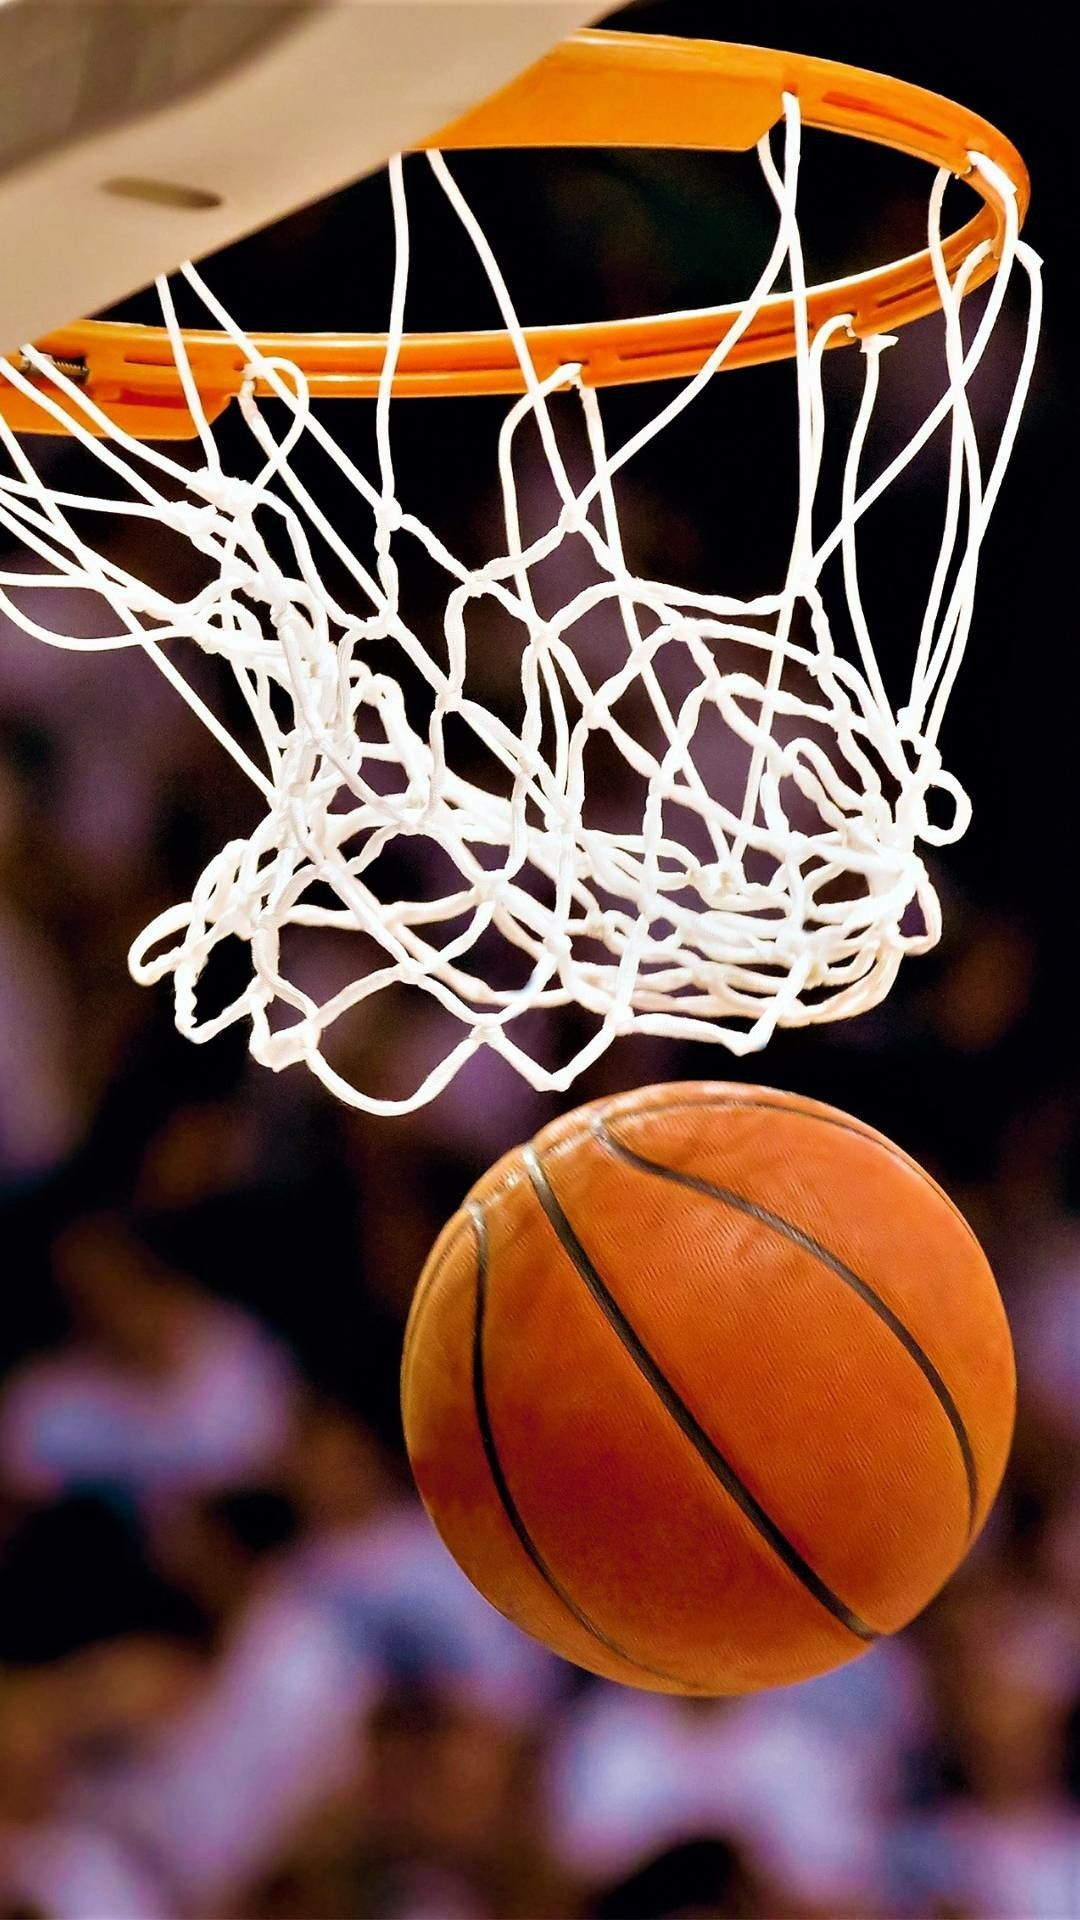 Basketball Phone Wallpapers Top Free Basketball Phone